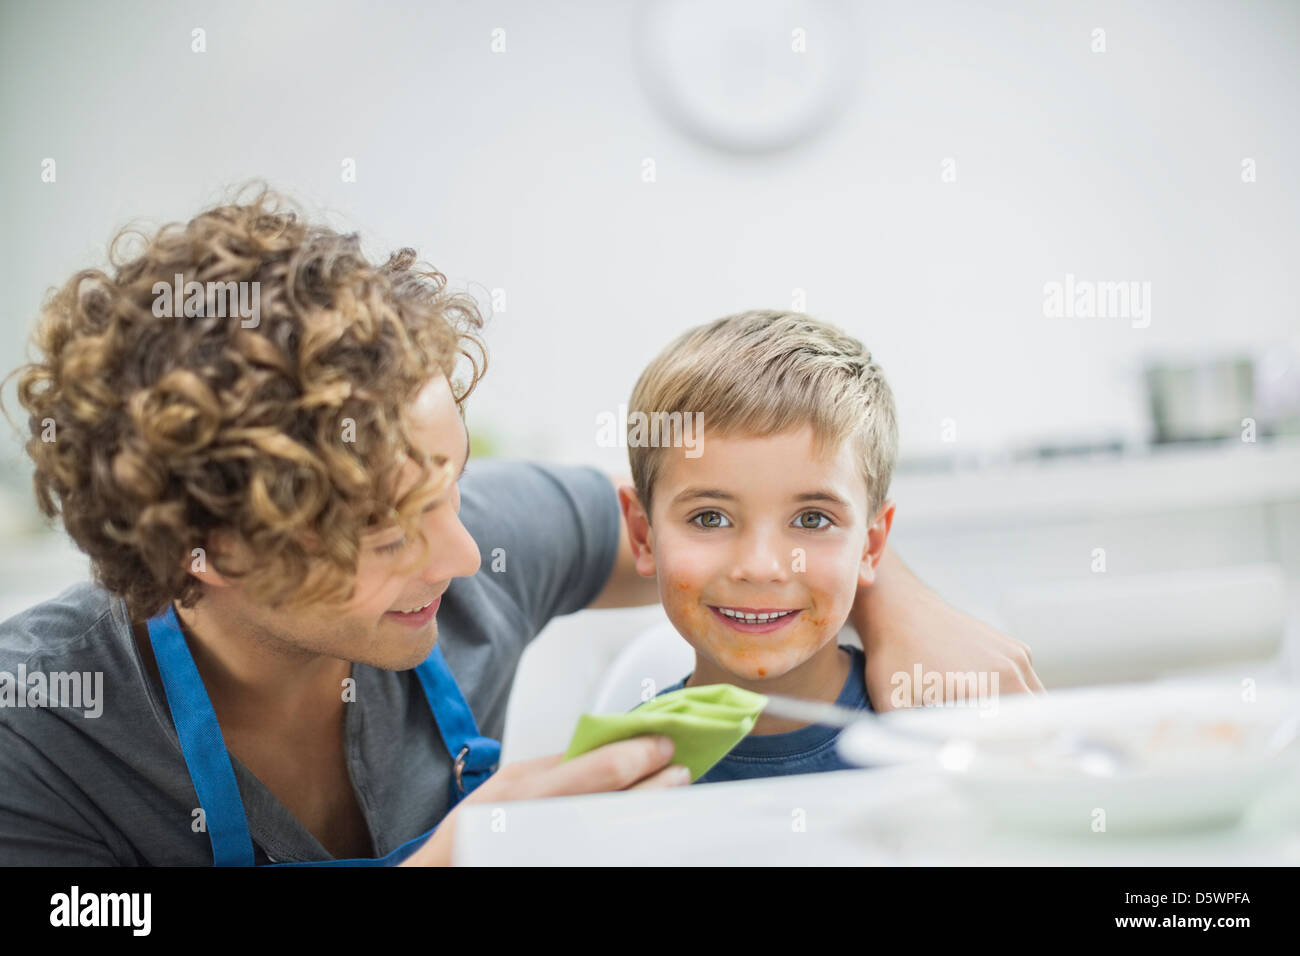 Father wiping son's mouth at table - Stock Image